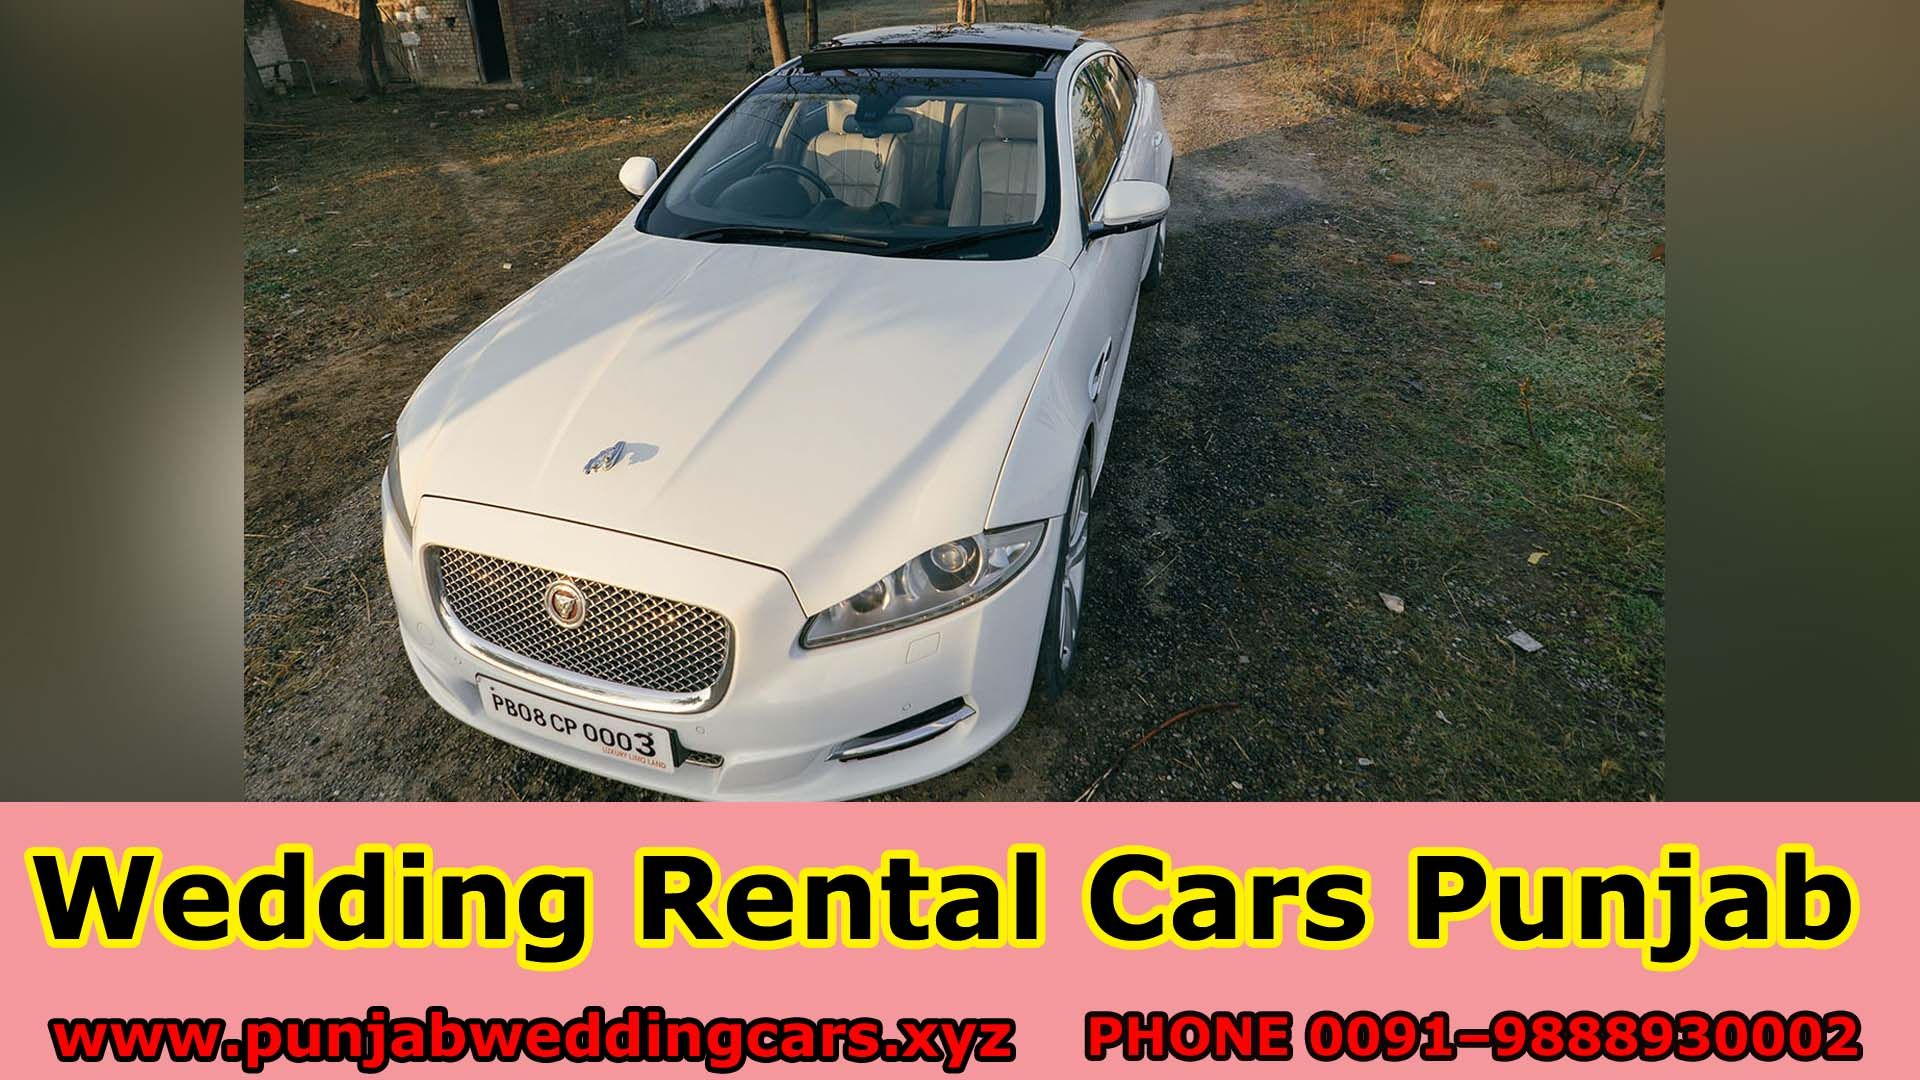 Best Luxury Cars Rental In The Jalandhar Punjab And Nationwide Whether You Re Cruising In An Economy Suv Luxury Ve Car Rental Luxury Car Rental Luxury Cars